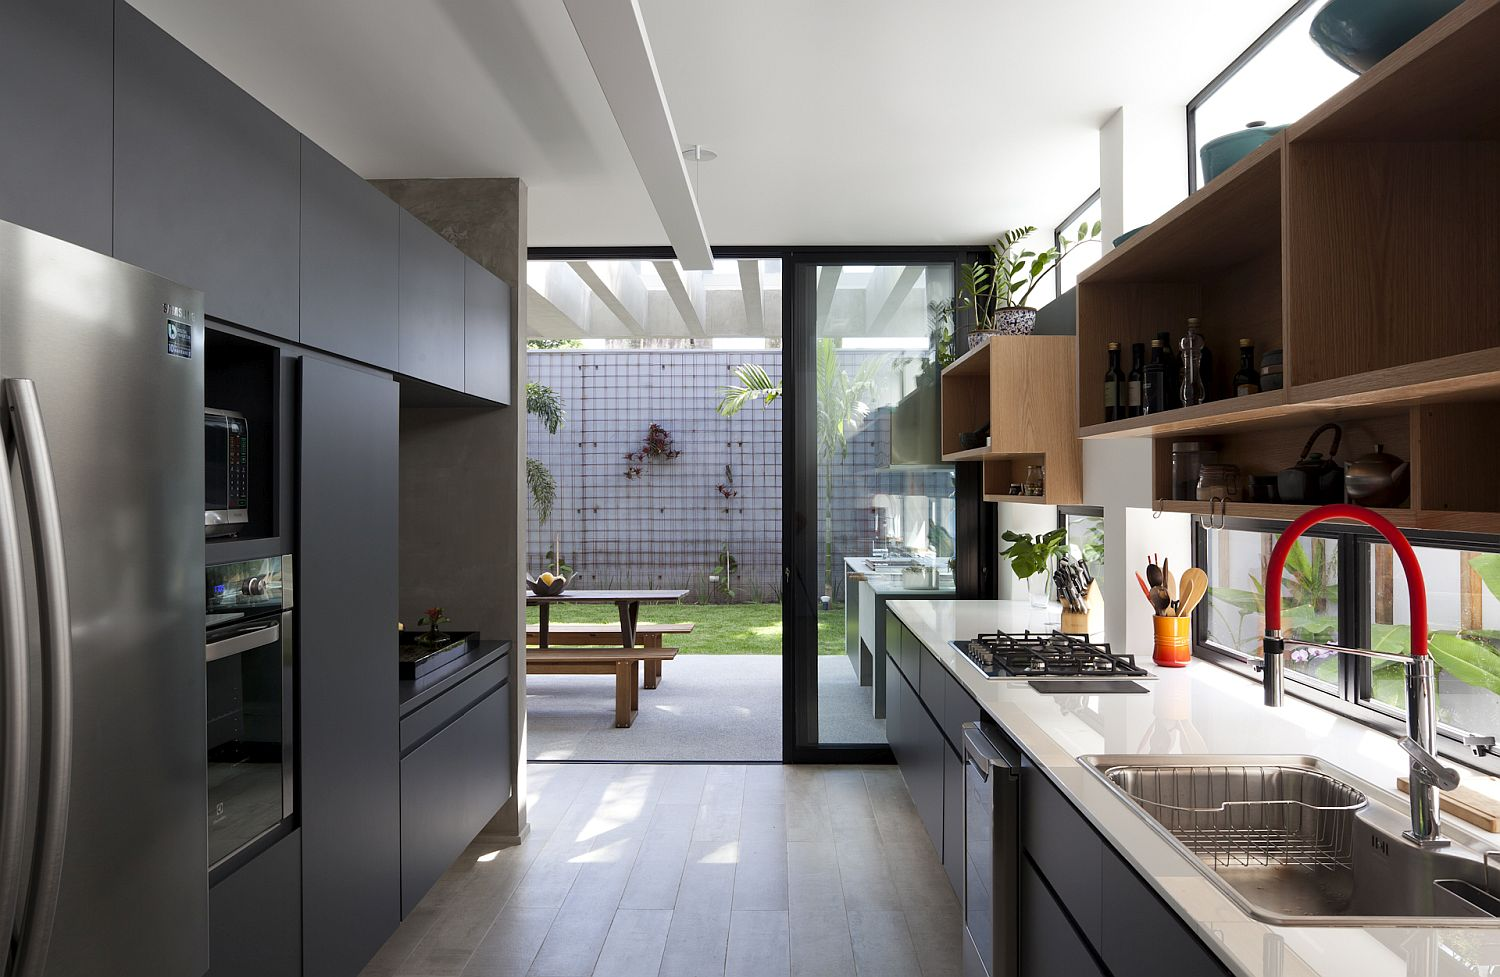 Sliding glass doors connect the light-filled kitchen with the garden outside